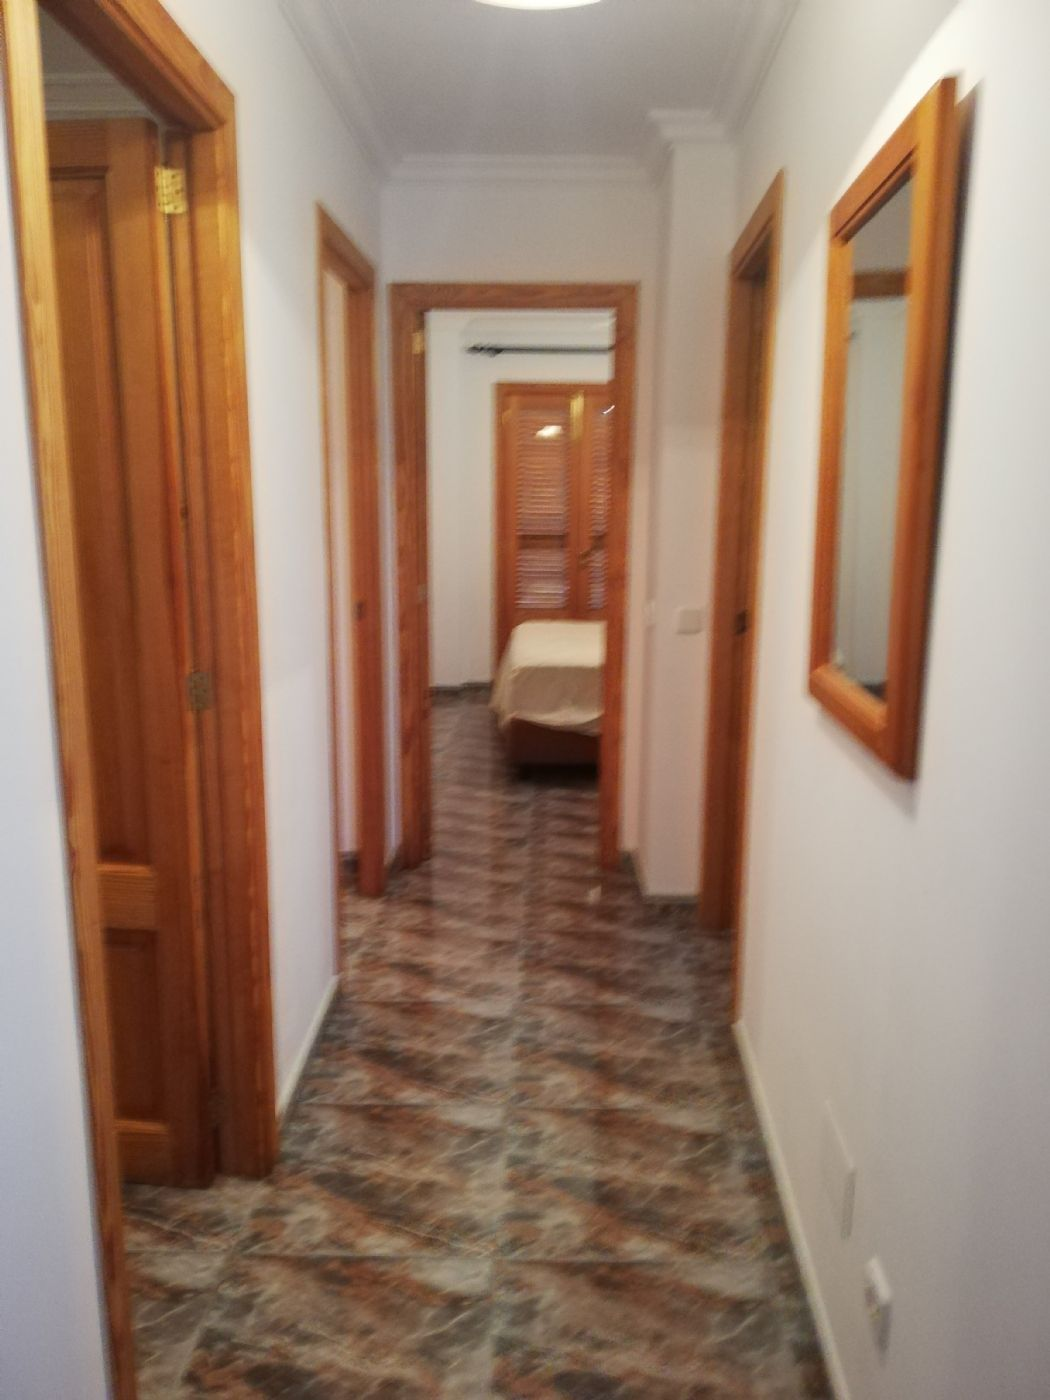 Rent Flat in Plaza mare de deu, 16. Piso en costitx